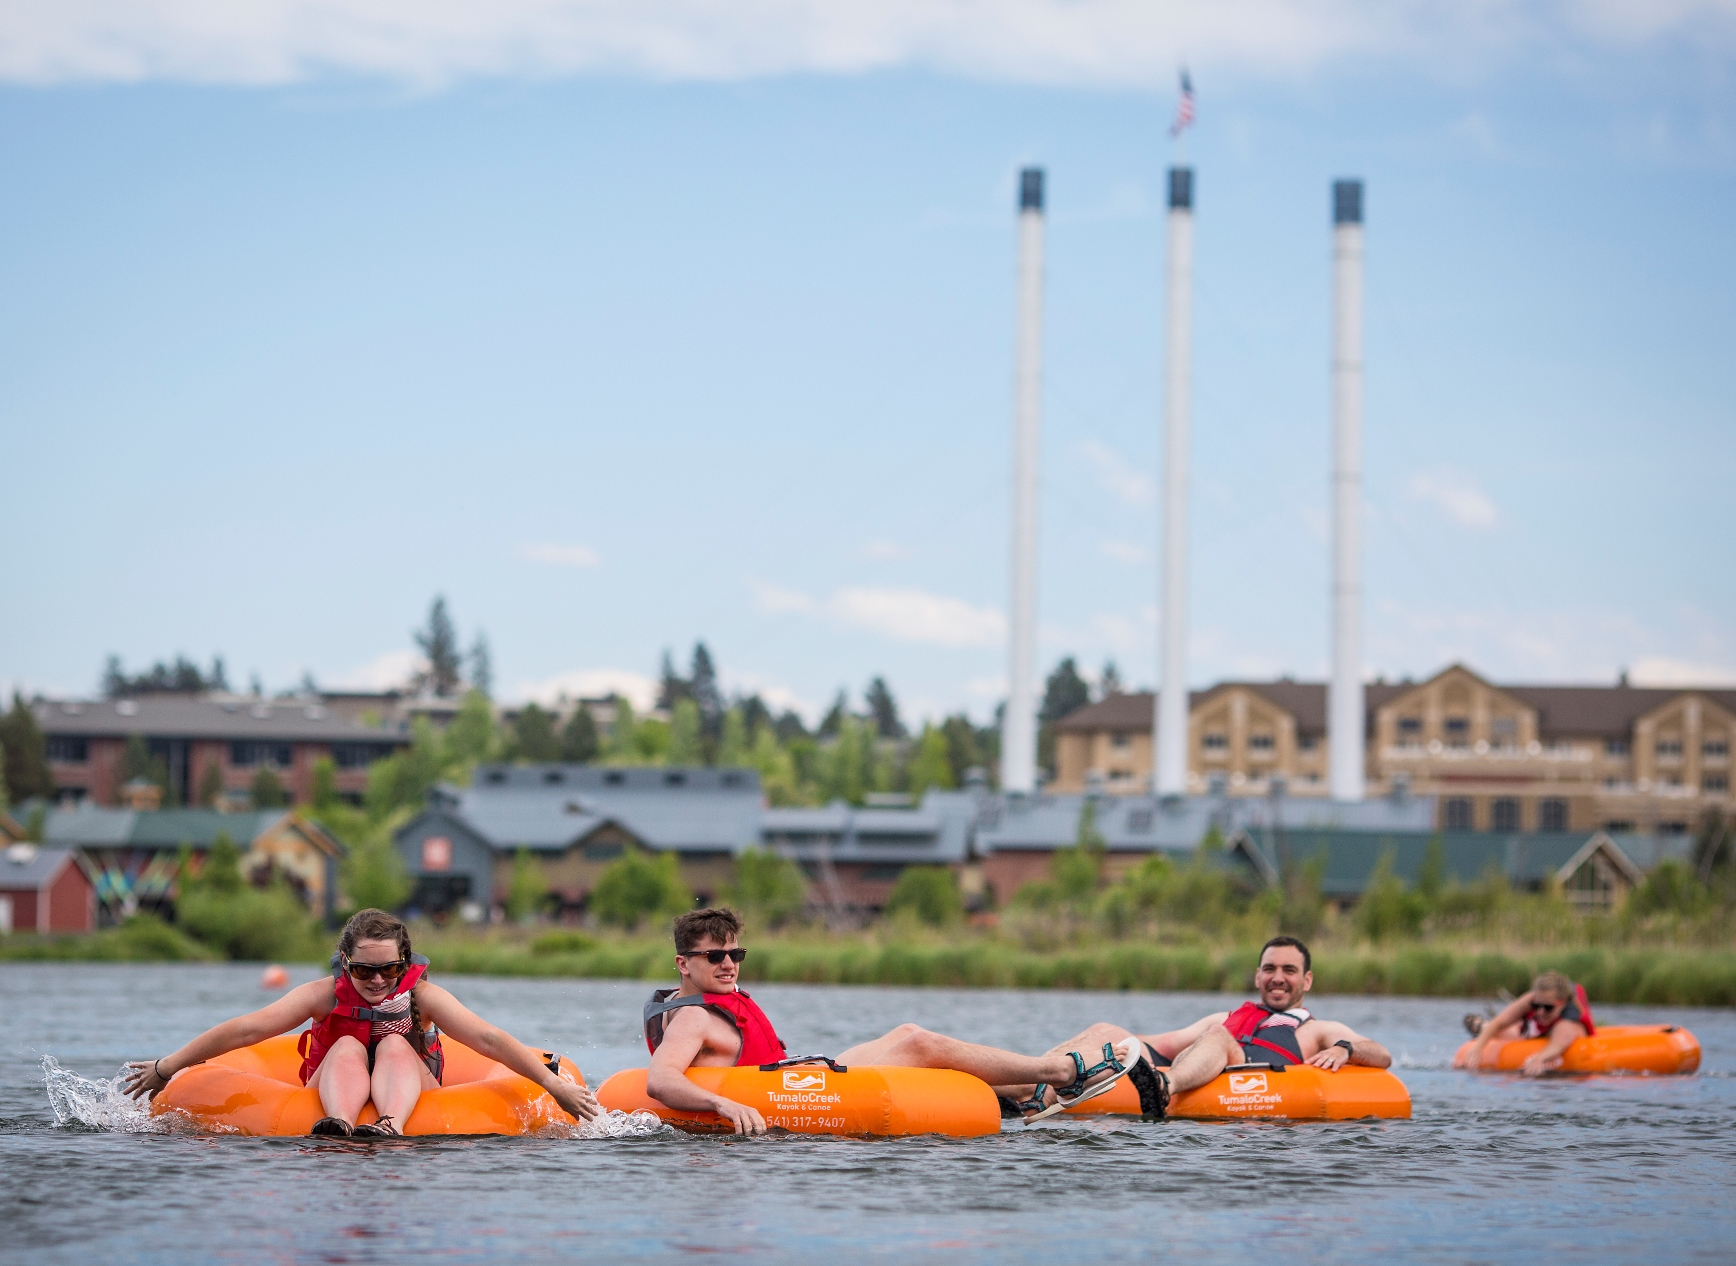 Floating the Deschutes River in Bend